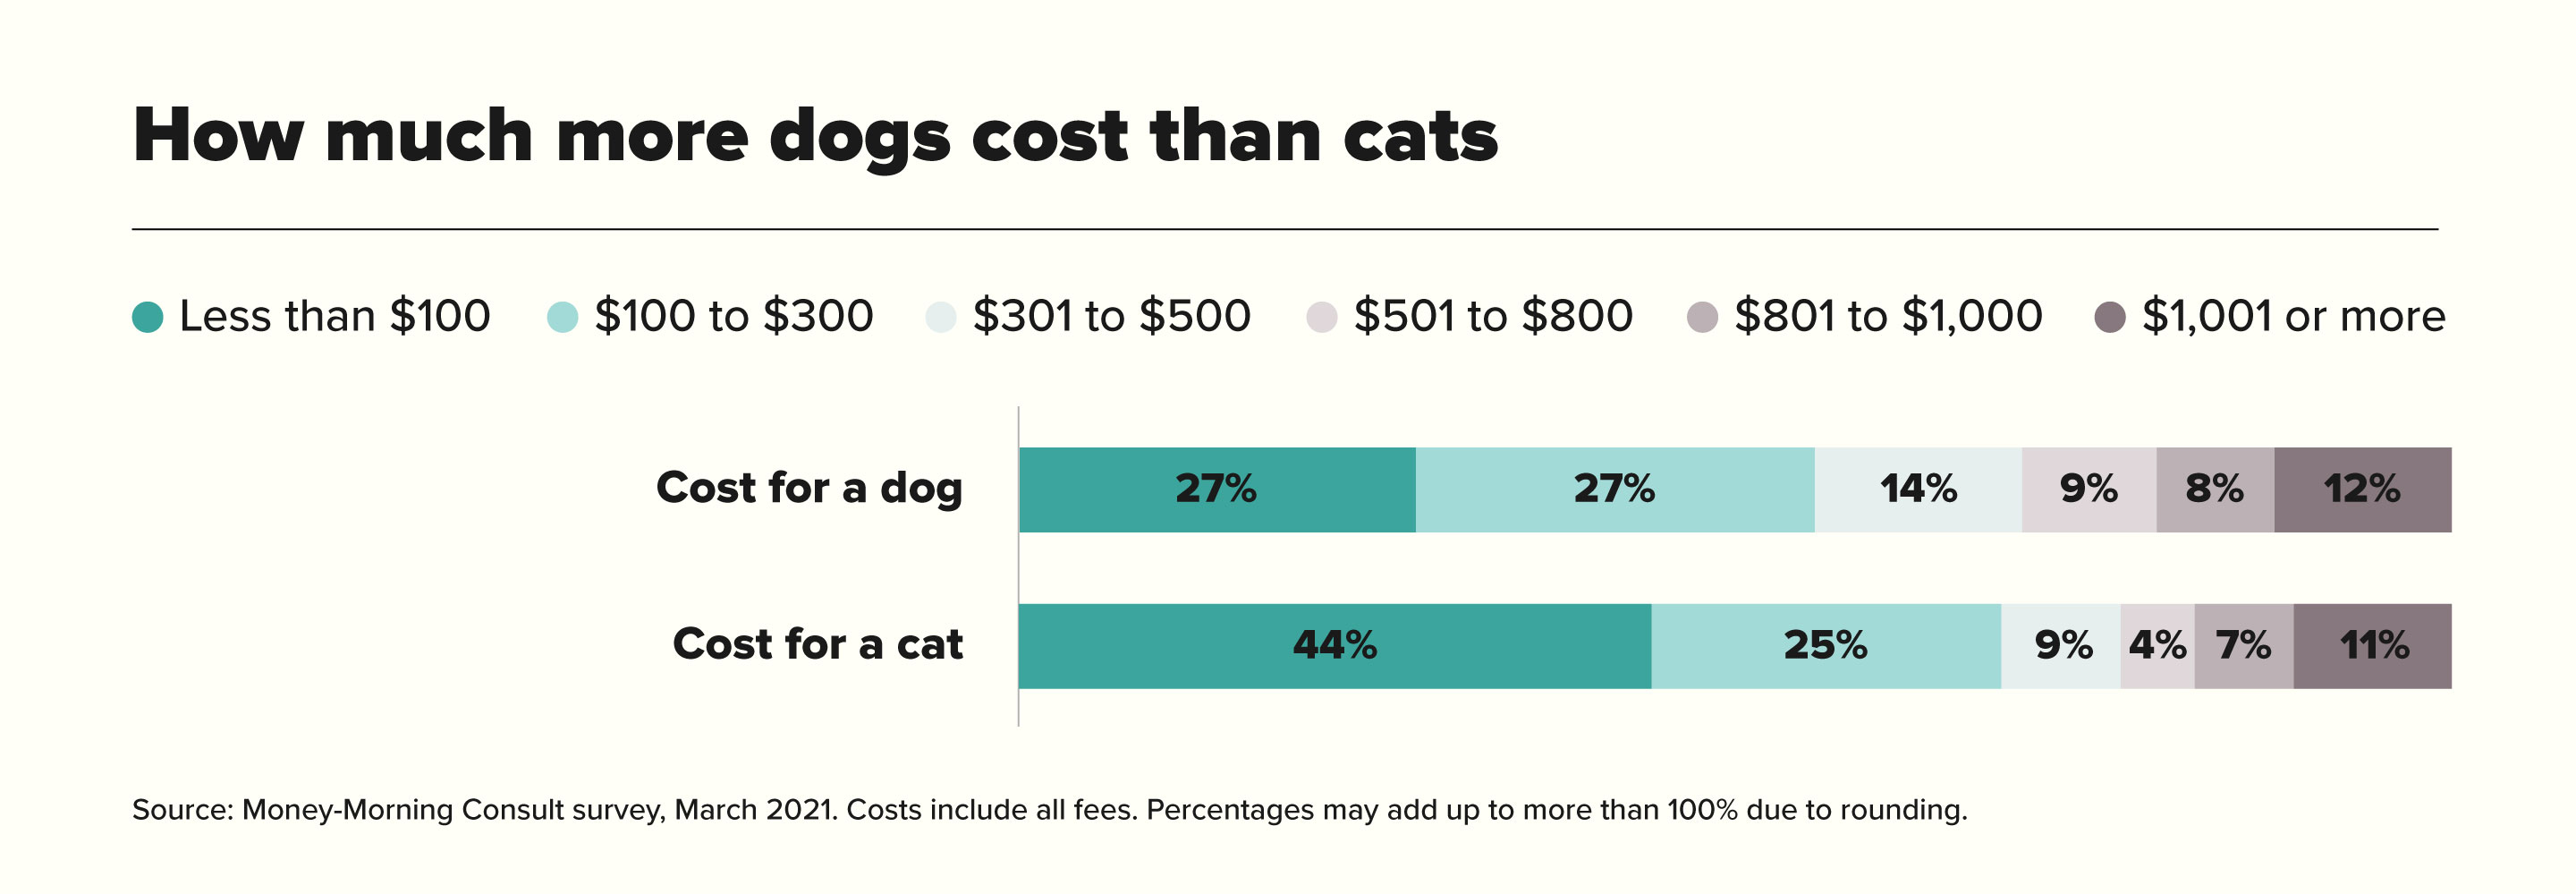 How much more dogs cost than cats